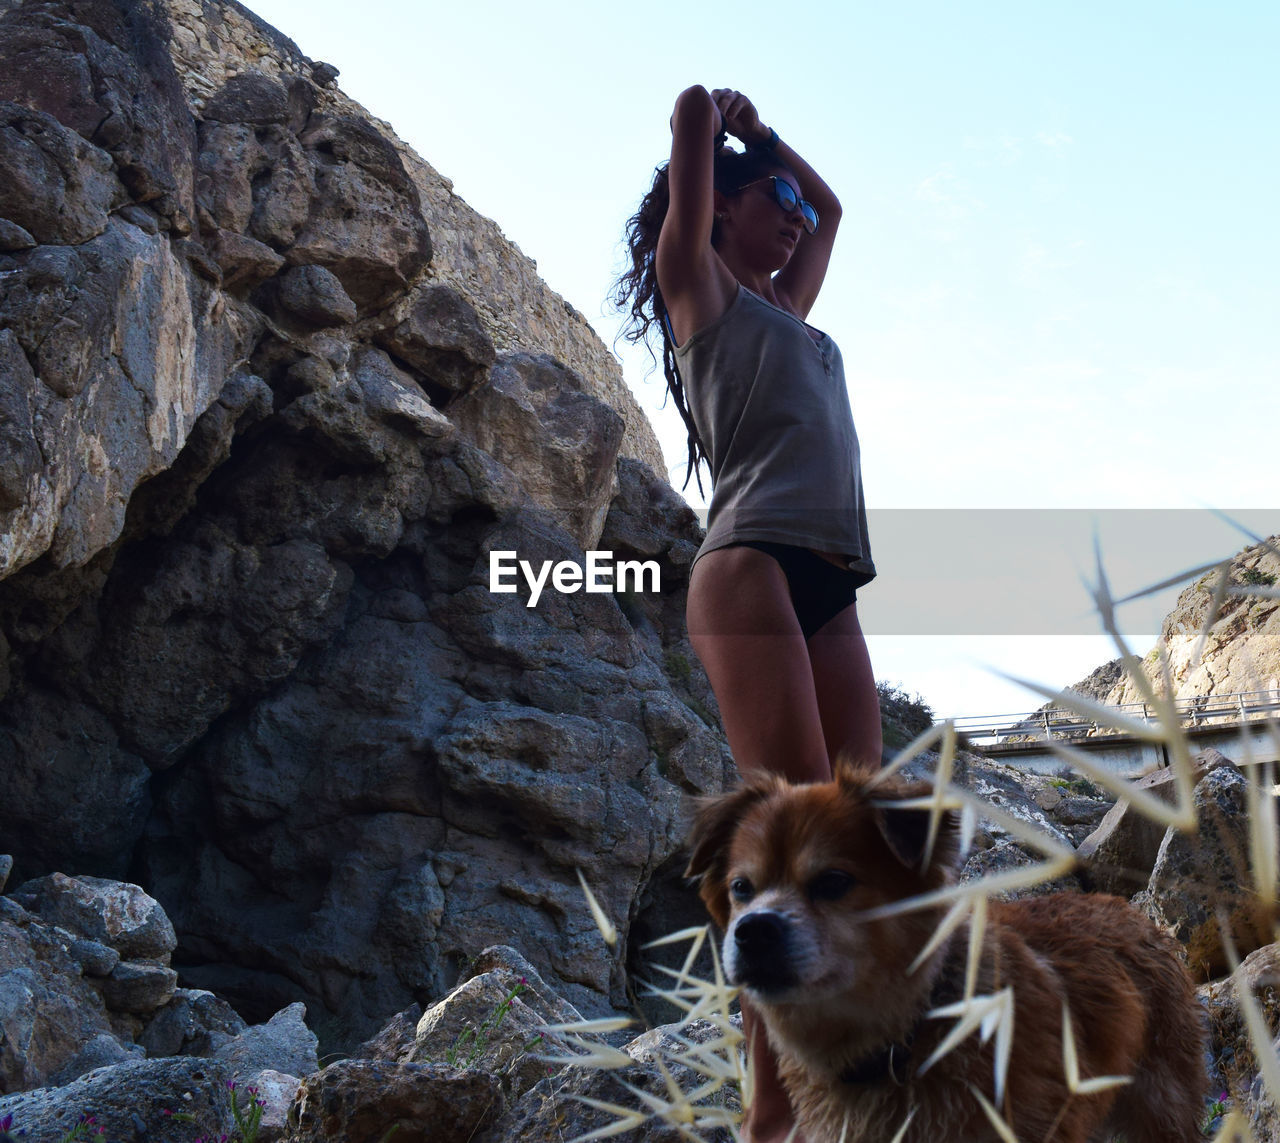 real people, mammal, leisure activity, domestic animals, rock - object, one animal, dog, one person, lifestyles, pets, nature, full length, clear sky, adventure, casual clothing, low angle view, standing, day, outdoors, young women, women, sky, young adult, beauty in nature